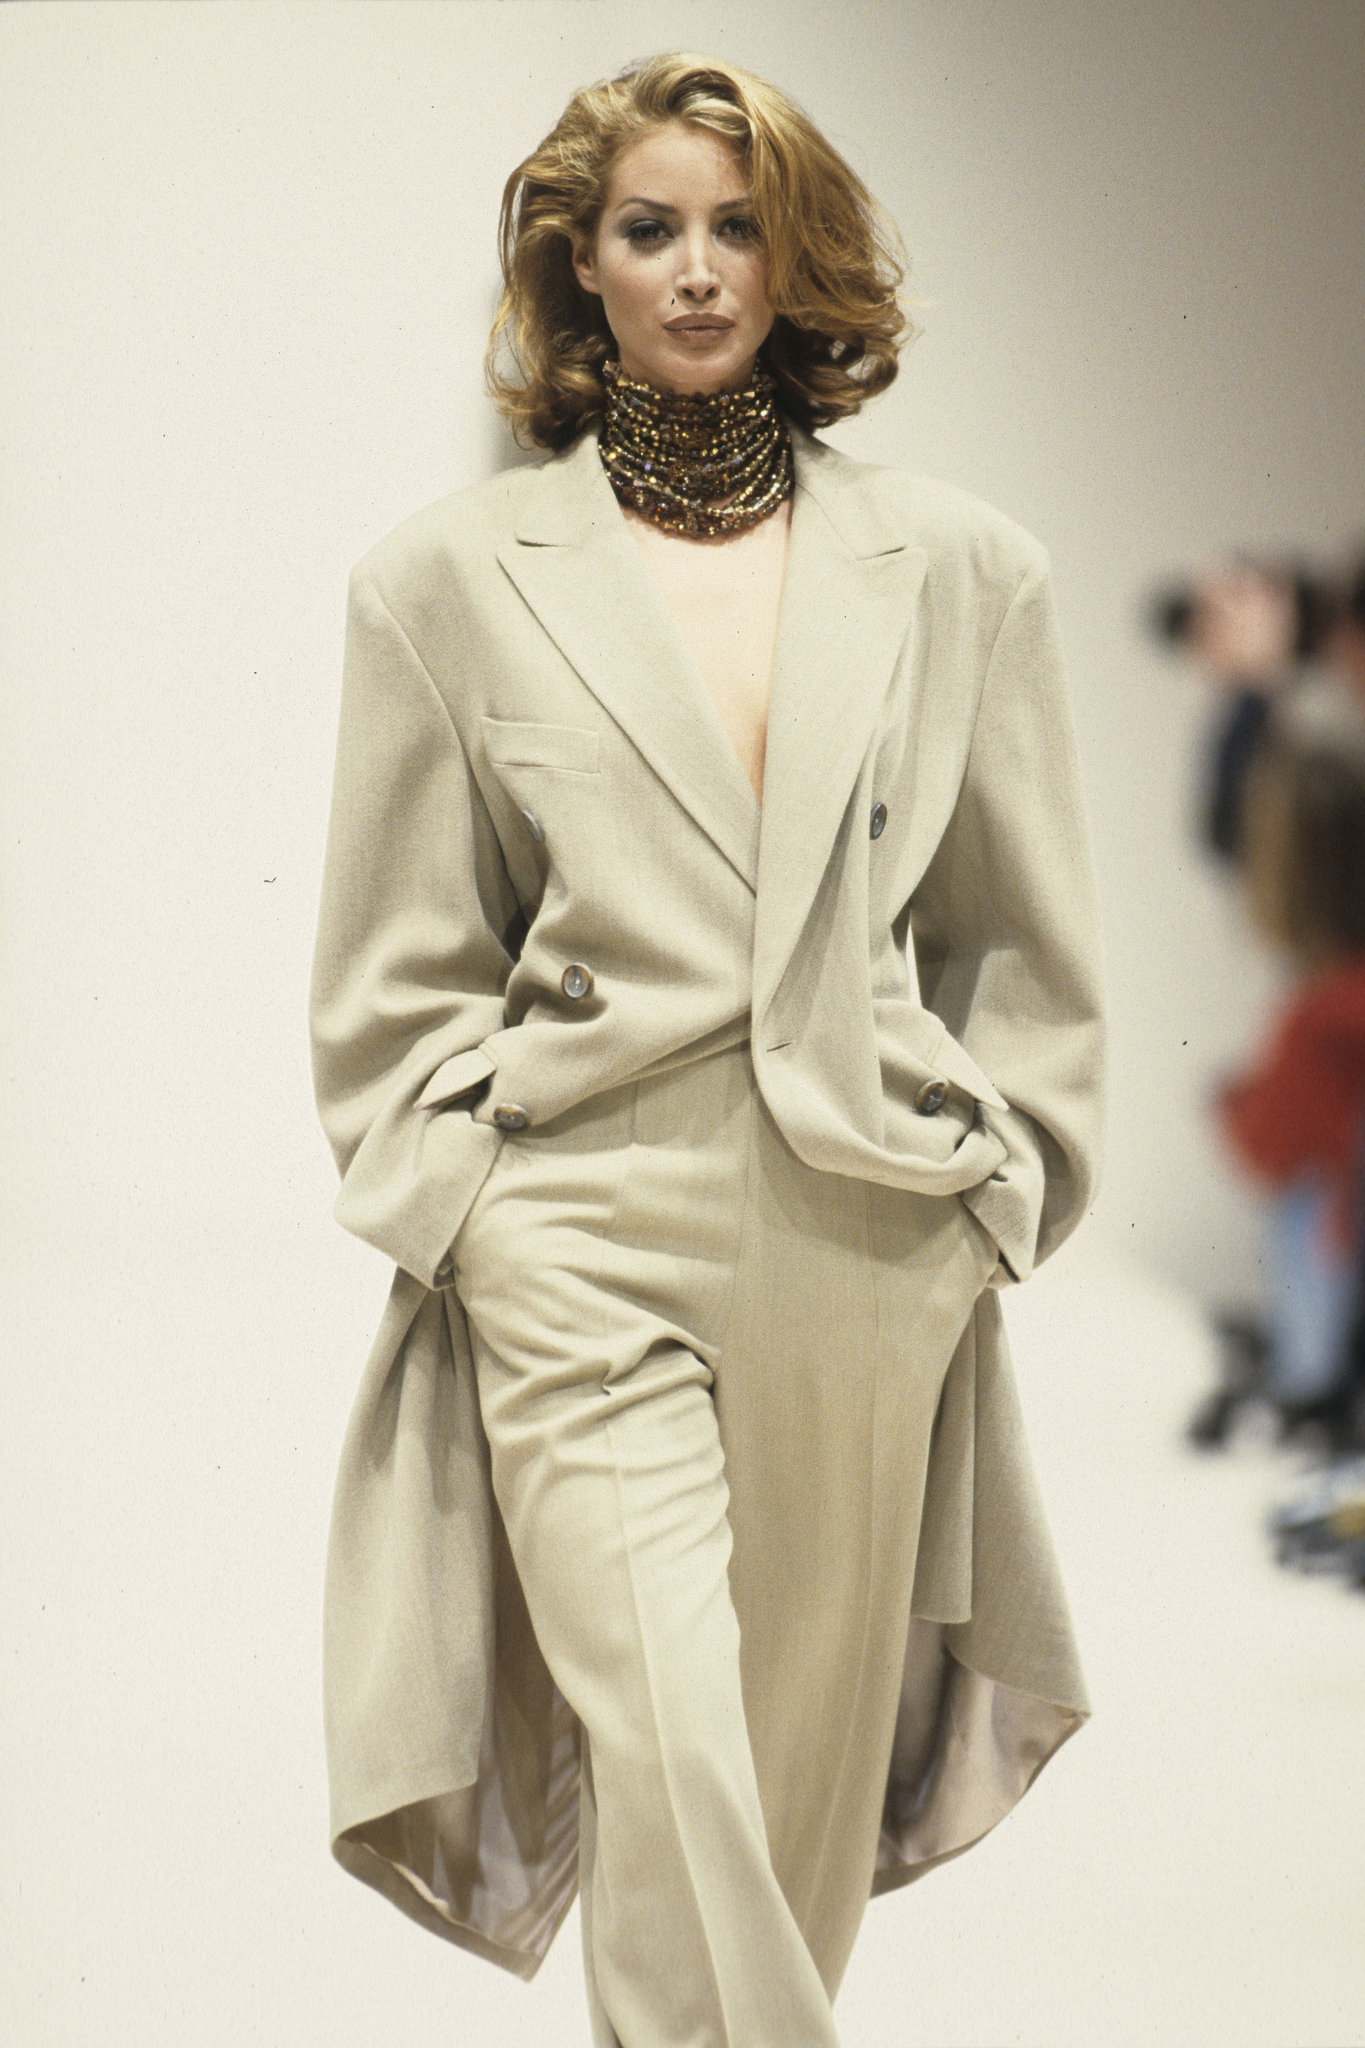 Christy Turlington wears an off-white suit with a knee-length jacket and beaded choker on the runway for designer Jil Sander's Fall 1992 show in Milan